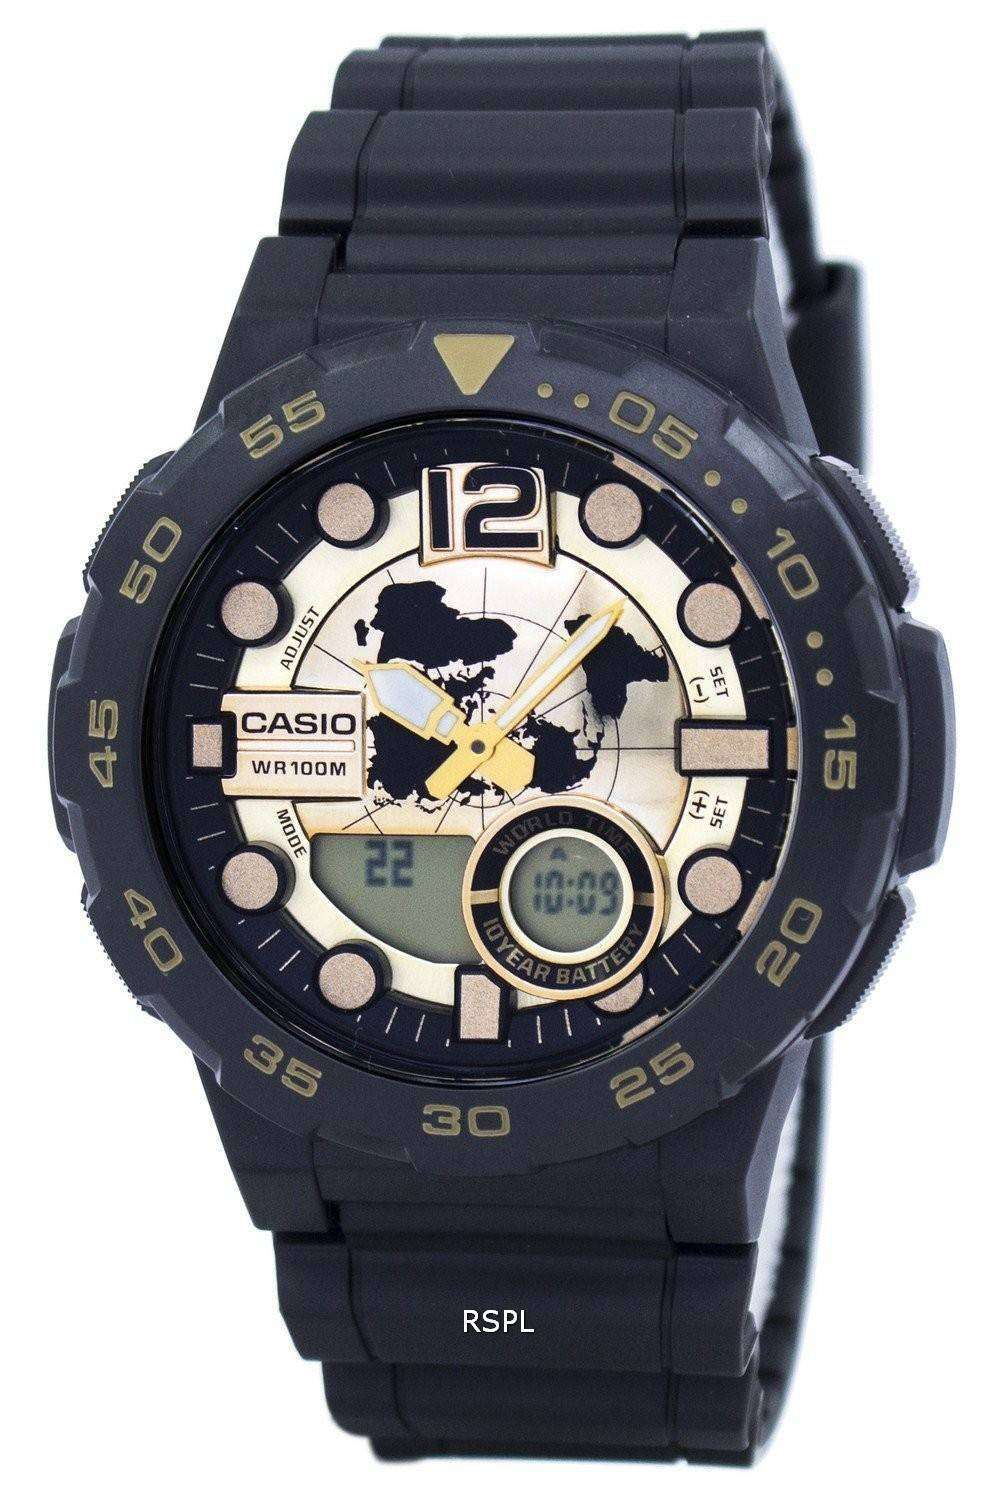 539f699c008 Casio World Time Alarm Analog Digital AEQ-100BW-9AV Men s Watch ...